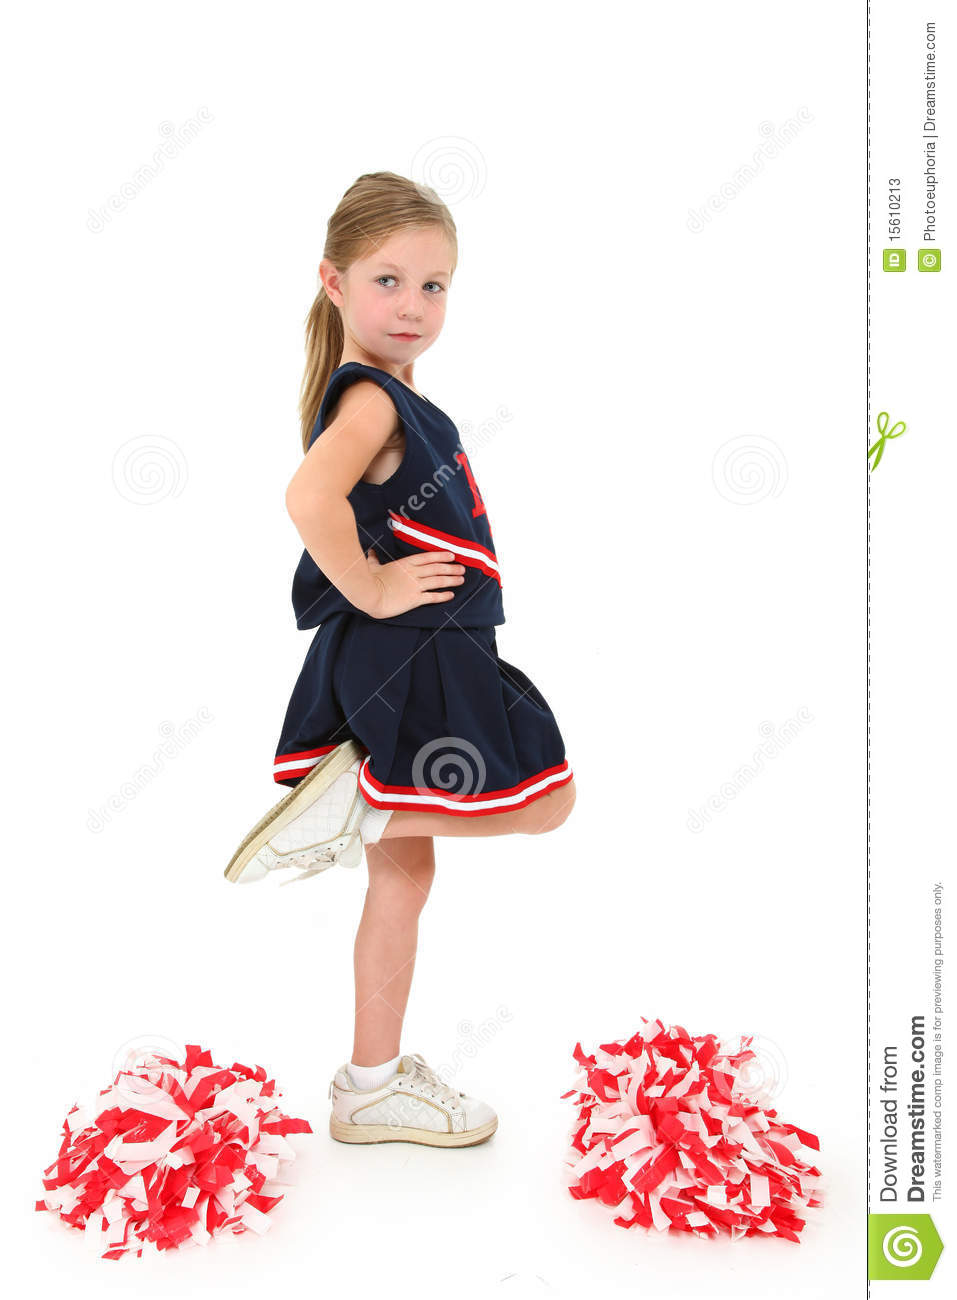 Majorette adorable